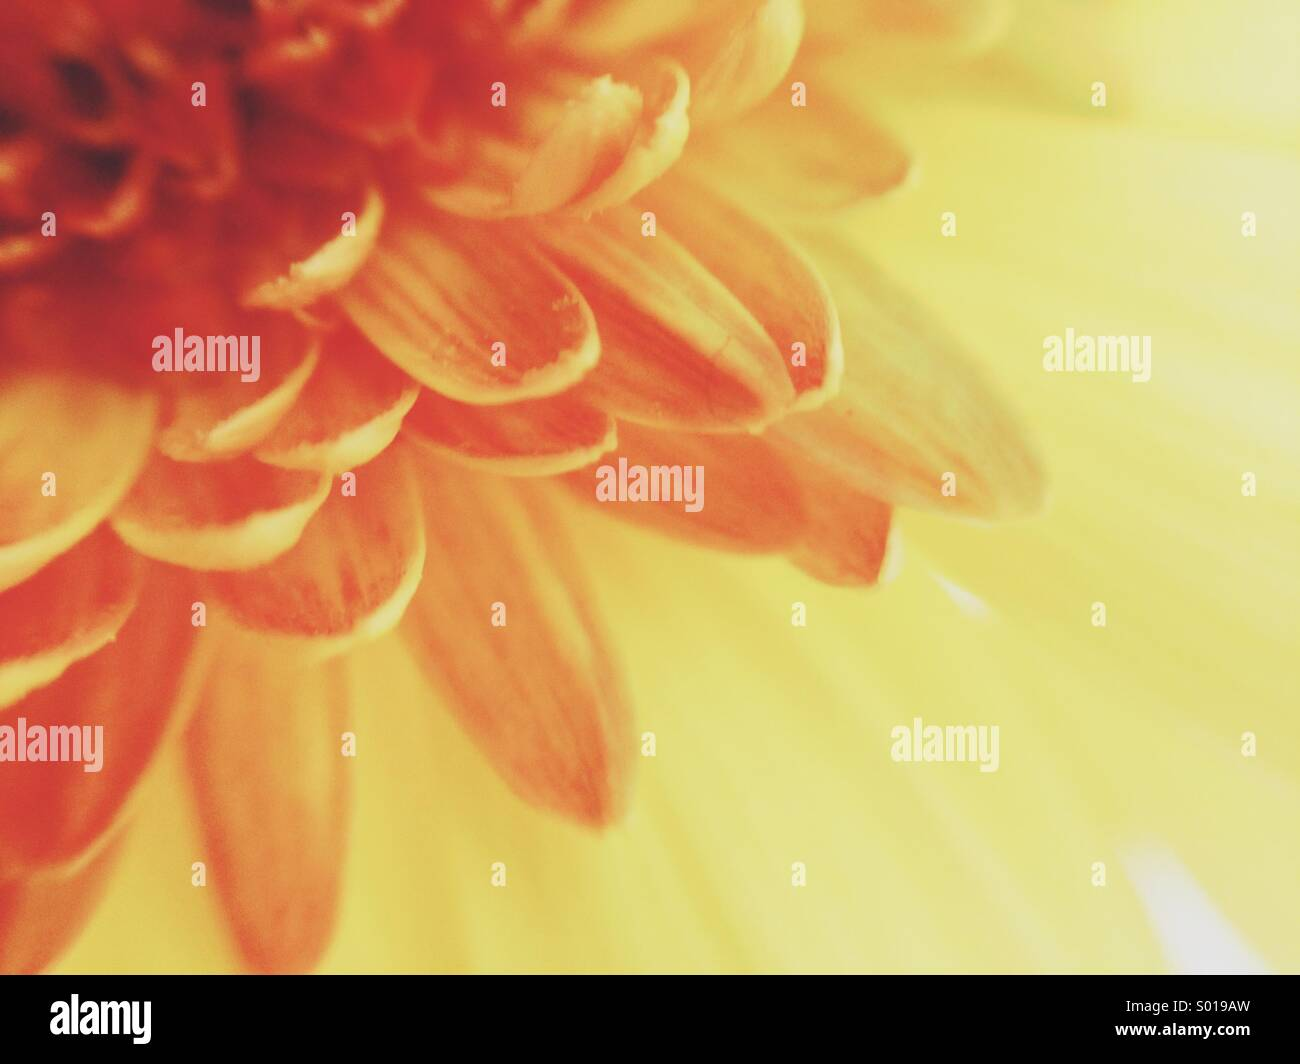 Bring a little sunshine to me - Stock Image